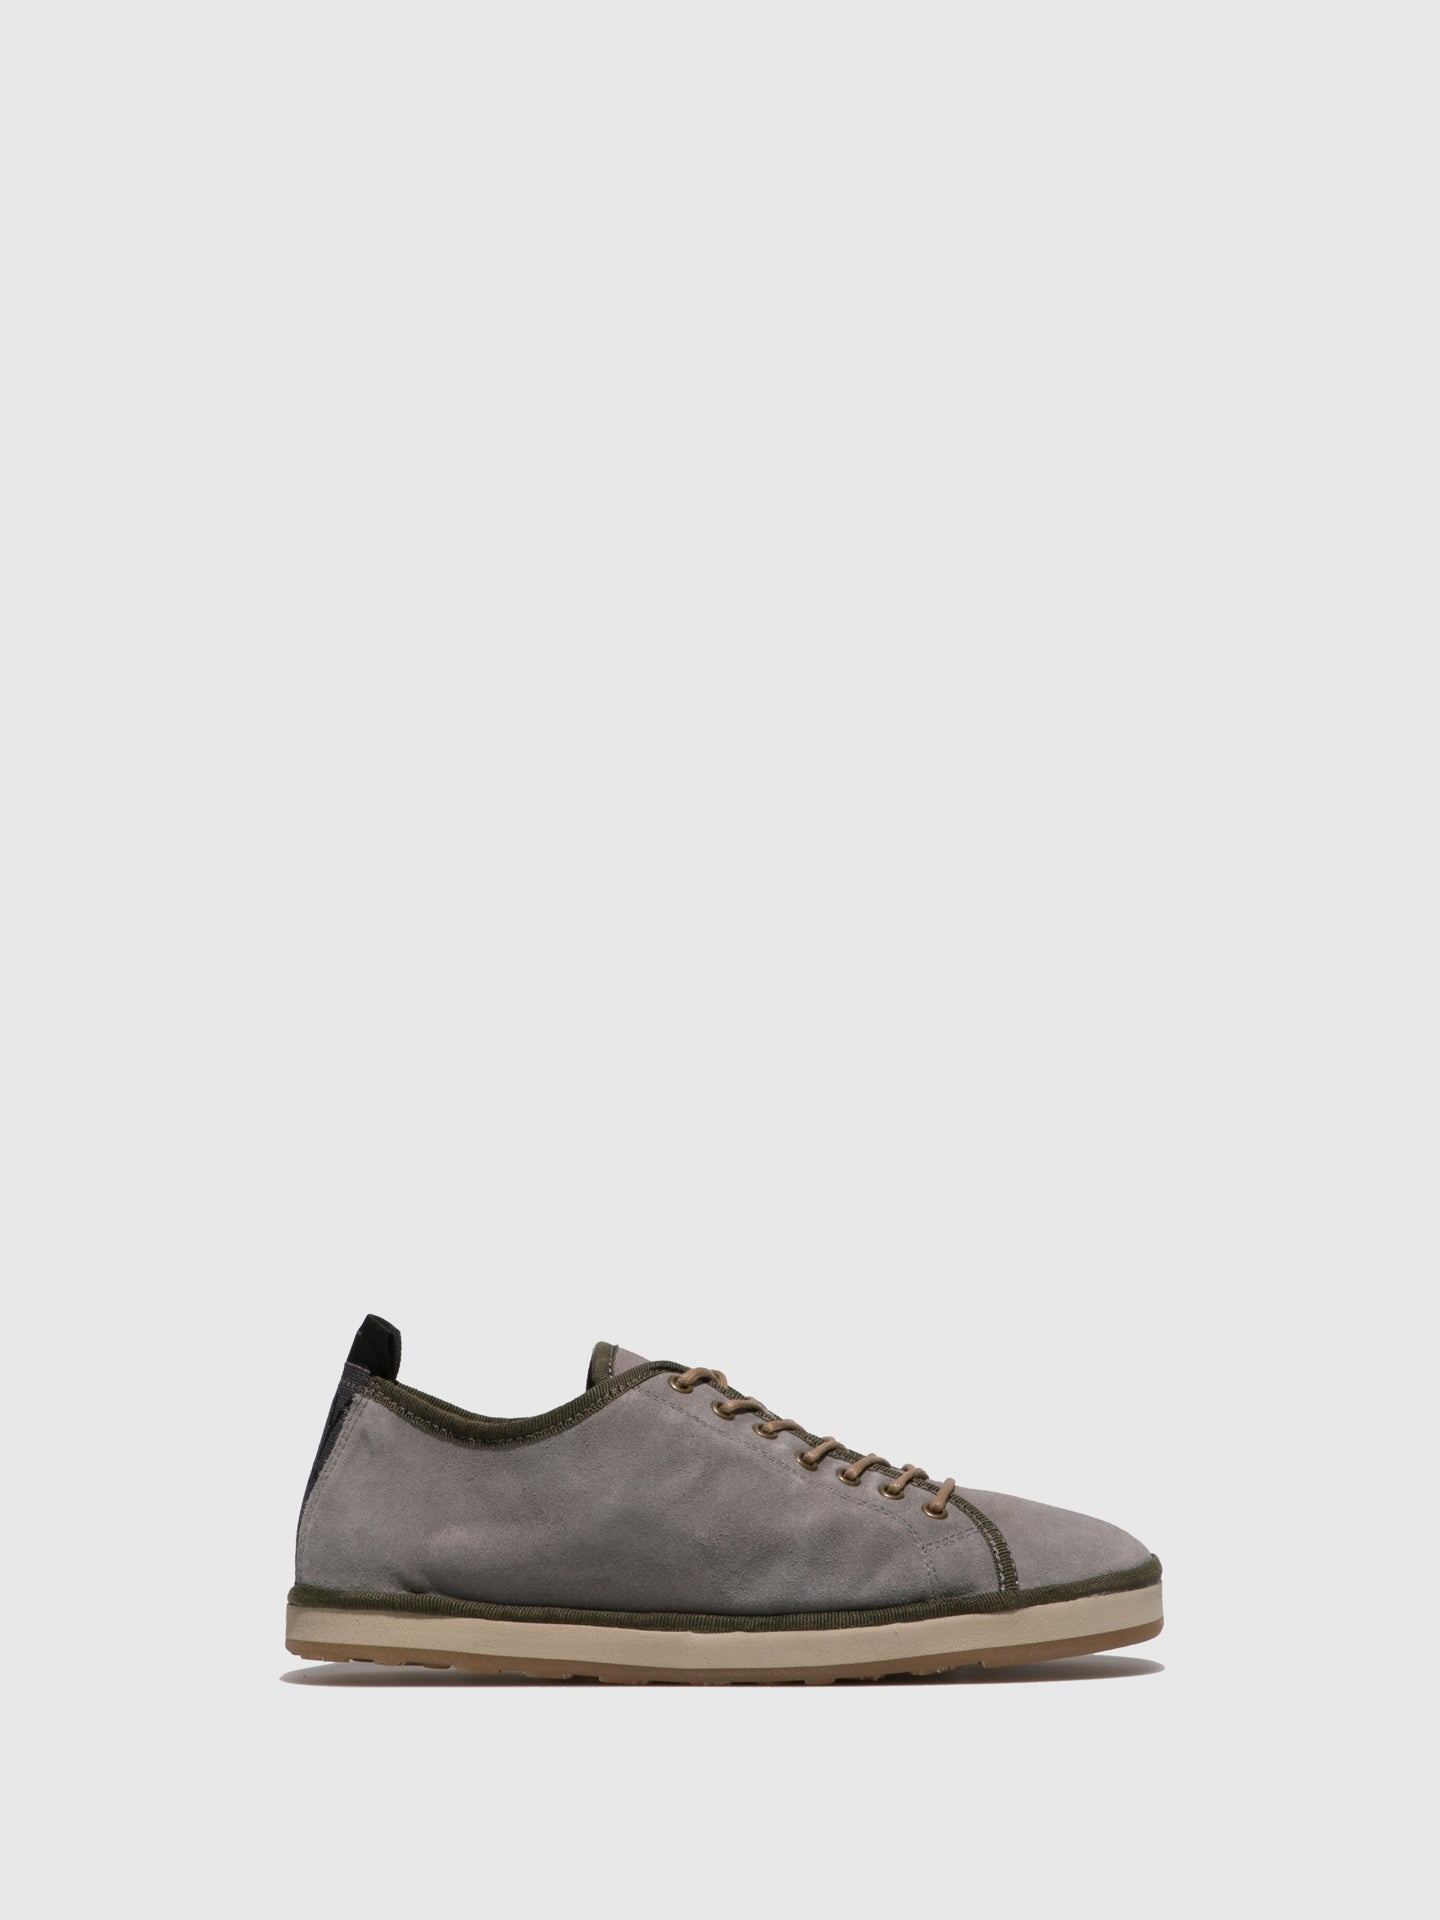 Fly London LightGray Lace-up Shoes